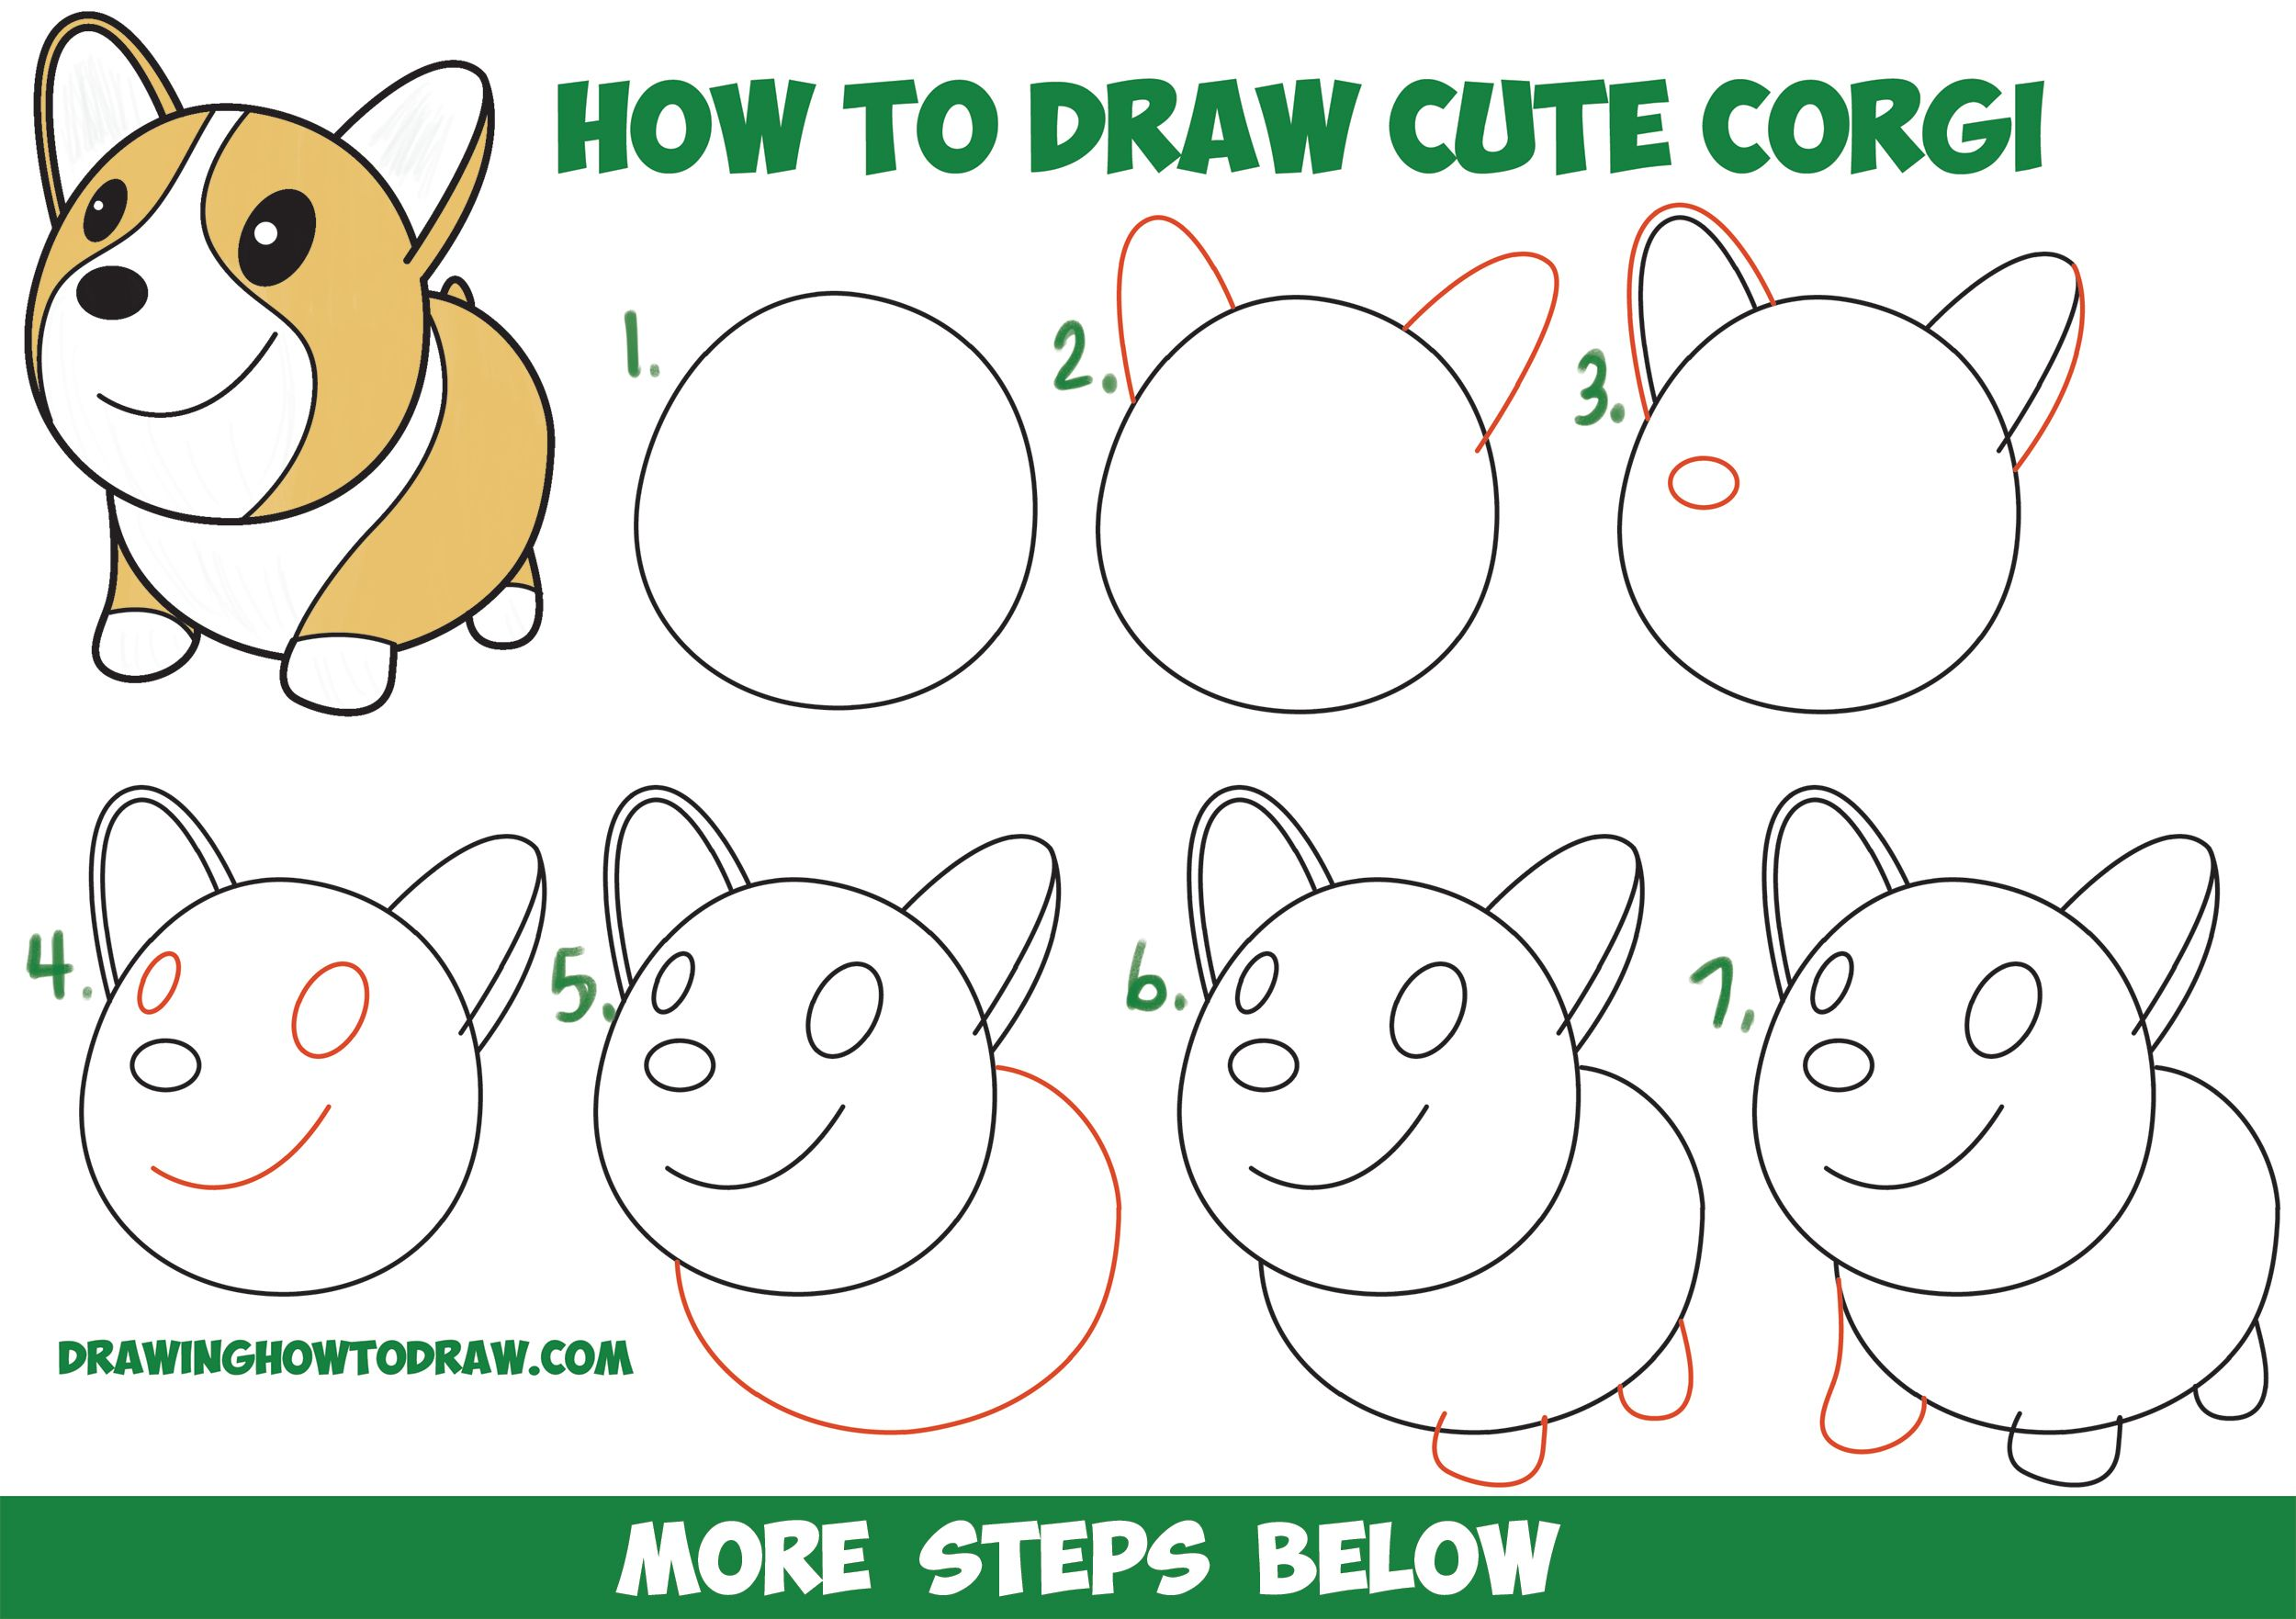 How To Draw A Cute Corgi Cartoon Kawaii Chibi Easy Step By